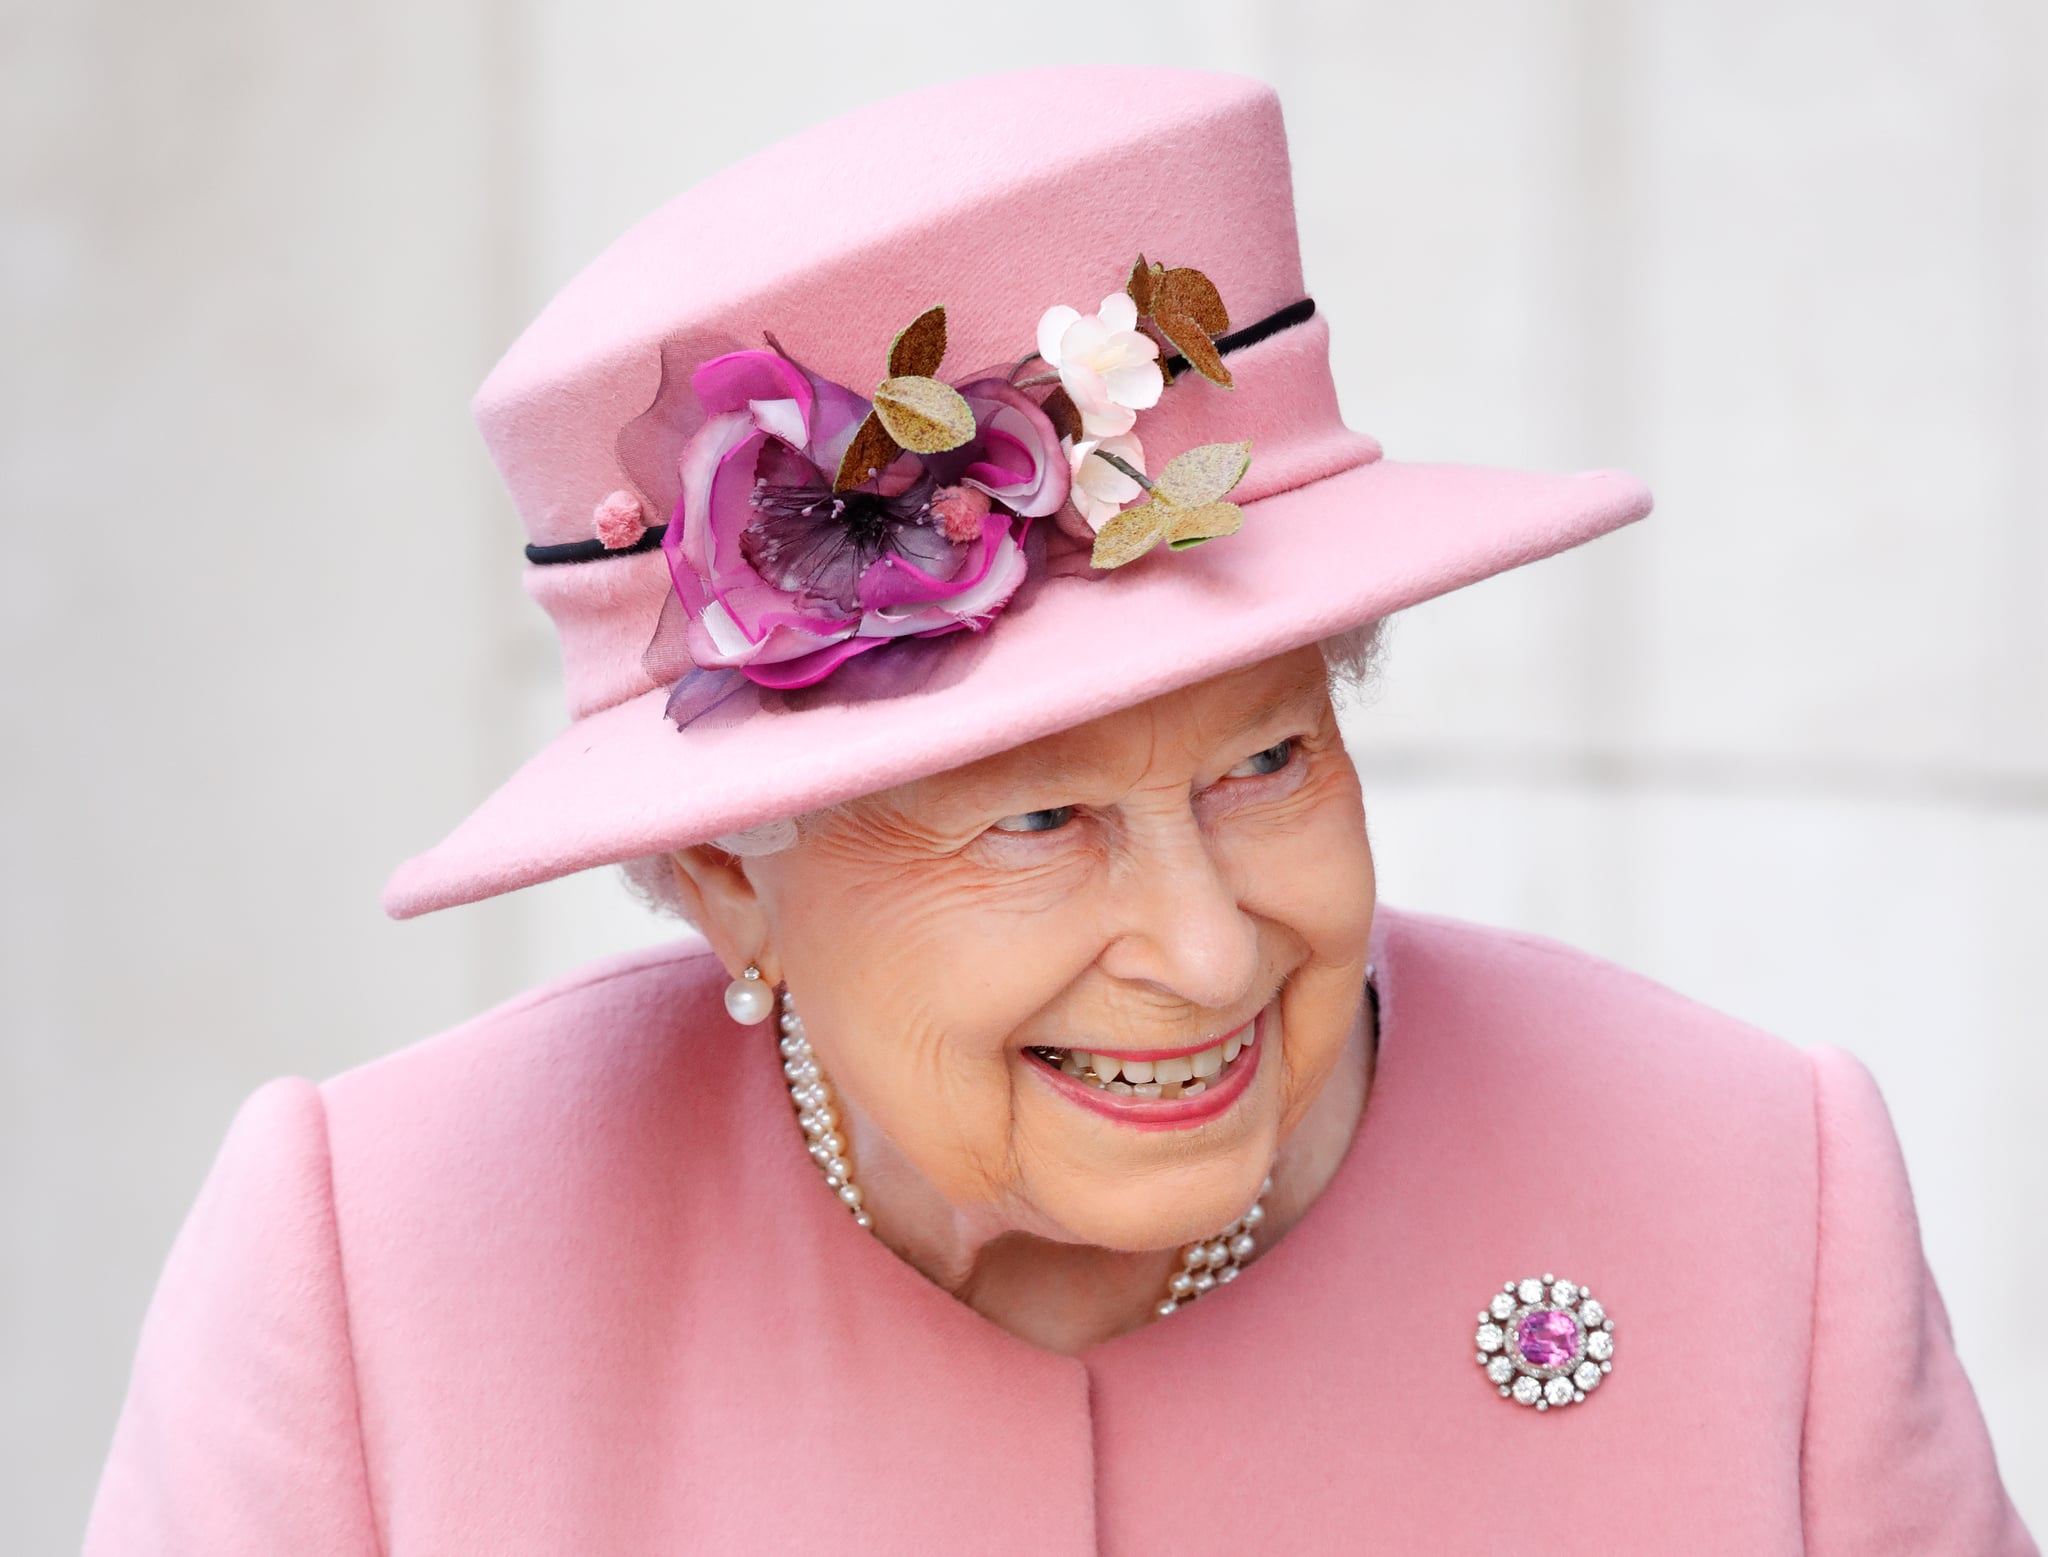 LONDON, UNITED KINGDOM - MARCH 19: (EMBARGOED FOR PUBLICATION IN UK NEWSPAPERS UNTIL 24 HOURS AFTER CREATE DATE AND TIME) Queen Elizabeth II visits King's College London to officially open Bush House, the latest education and learning facilities on the Strand Campus on March 19, 2019 in London, England. (Photo by Max Mumby/Indigo/Getty Images)